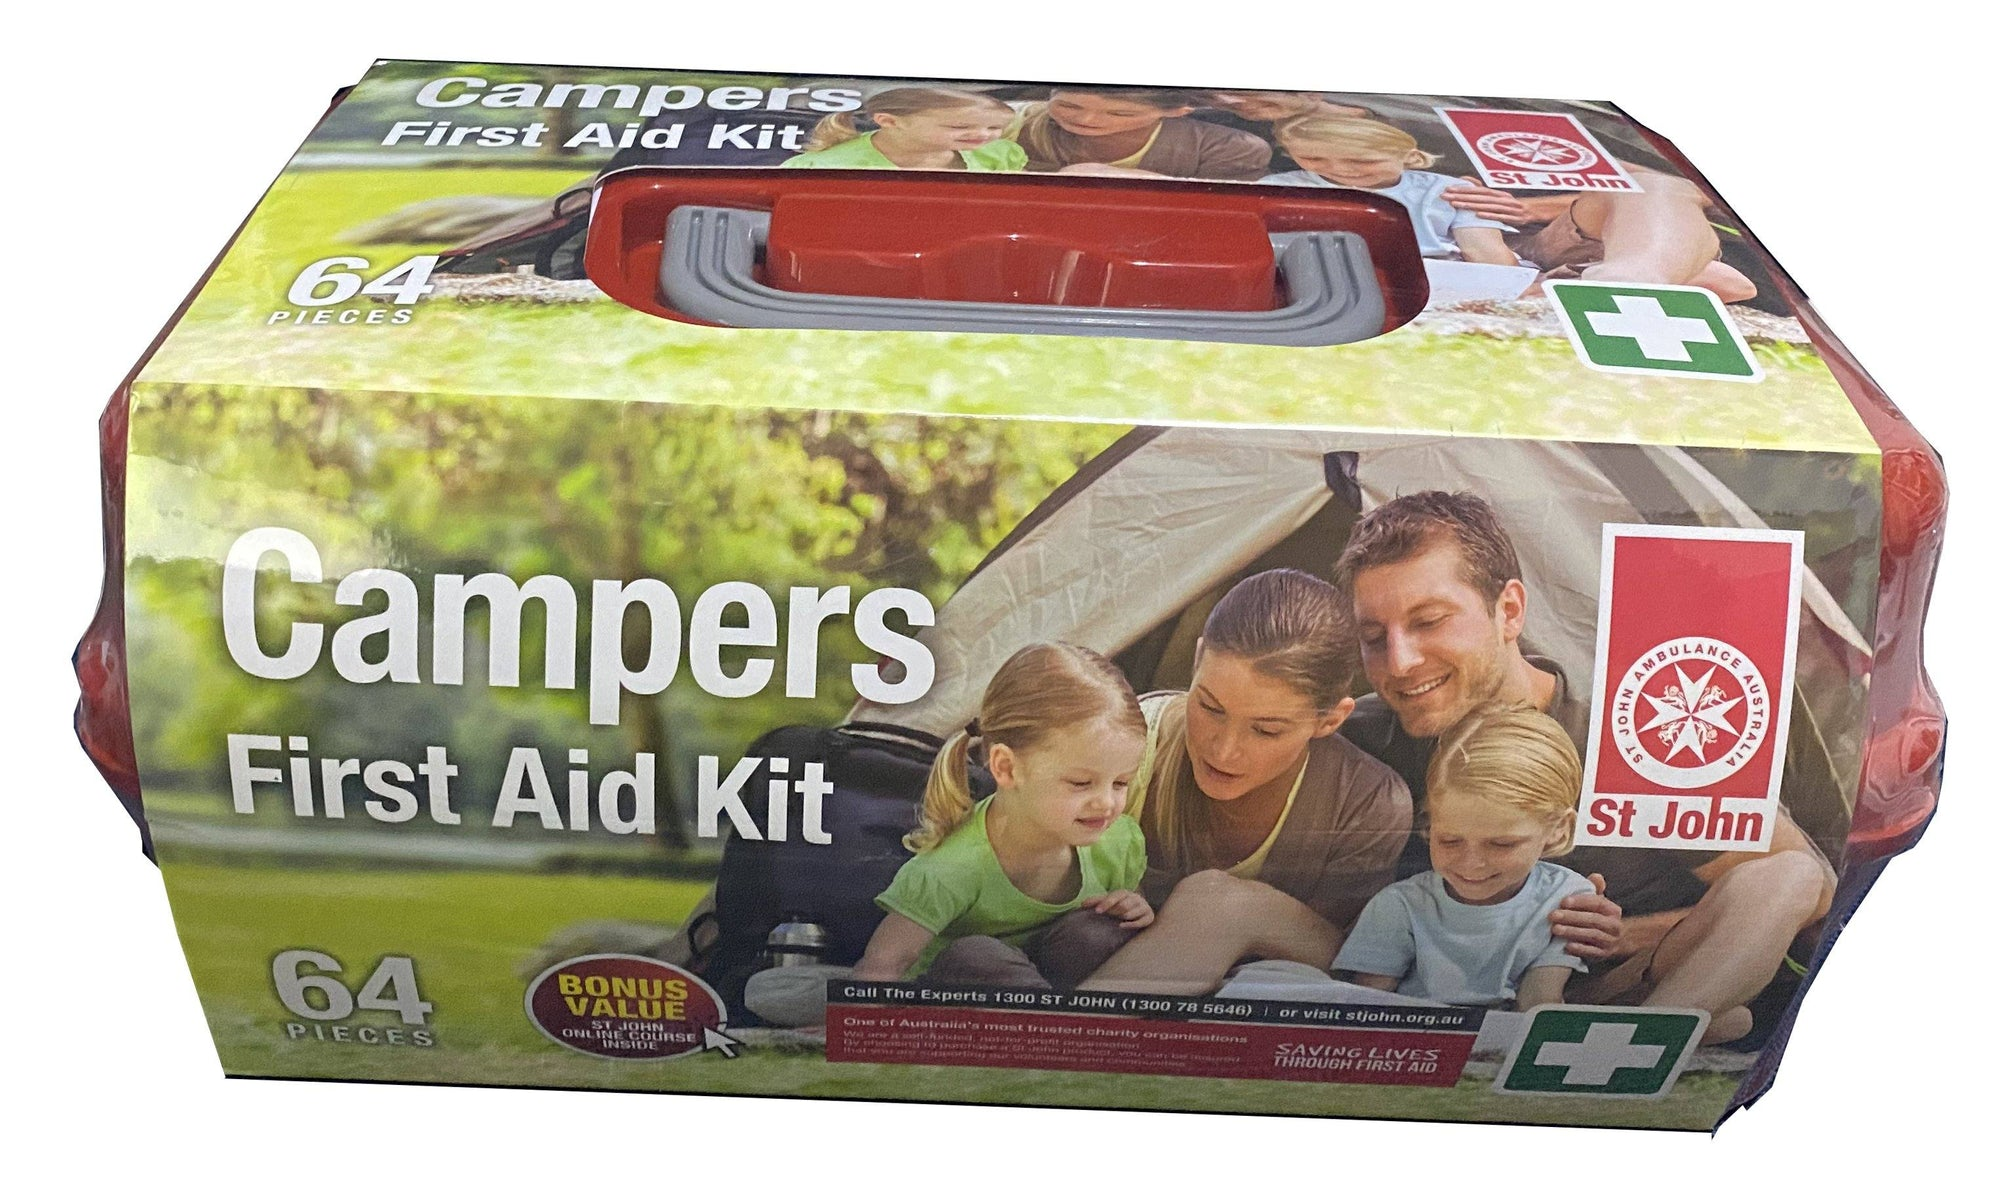 St John Campers First Aid Kit